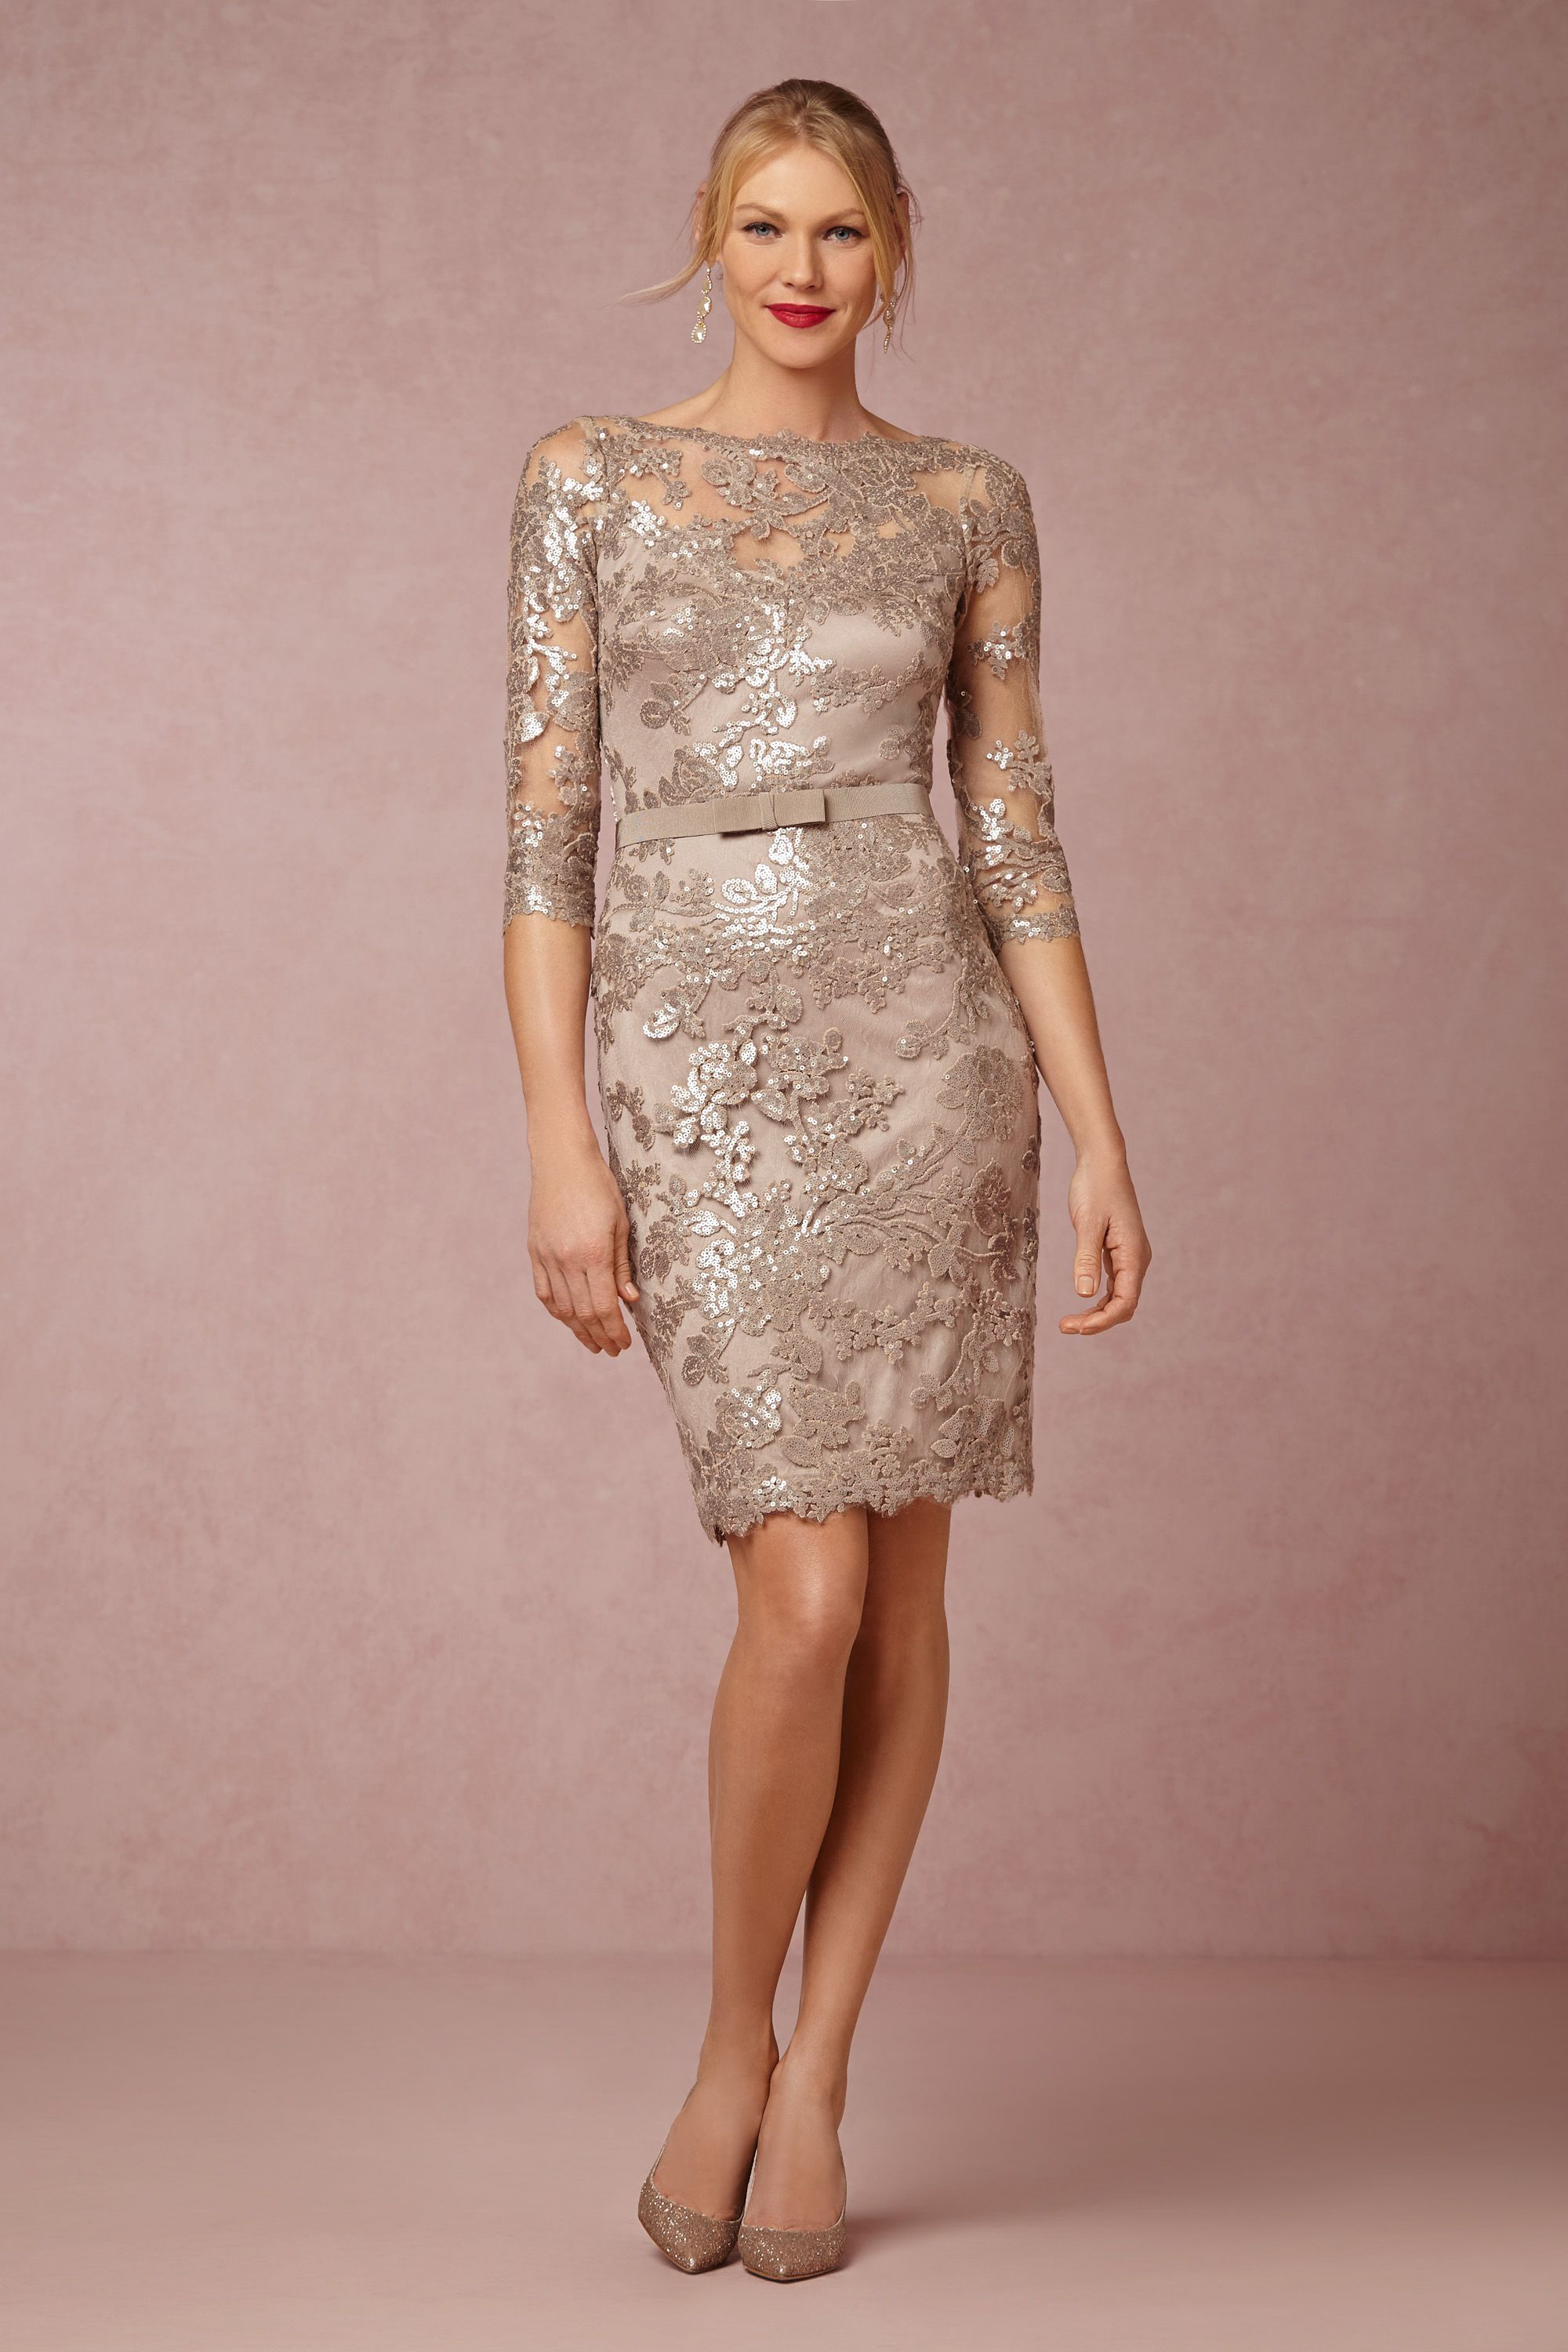 Liv Dress from @BHLDN $100 | Dresses | Pinterest | Vestidos para ...